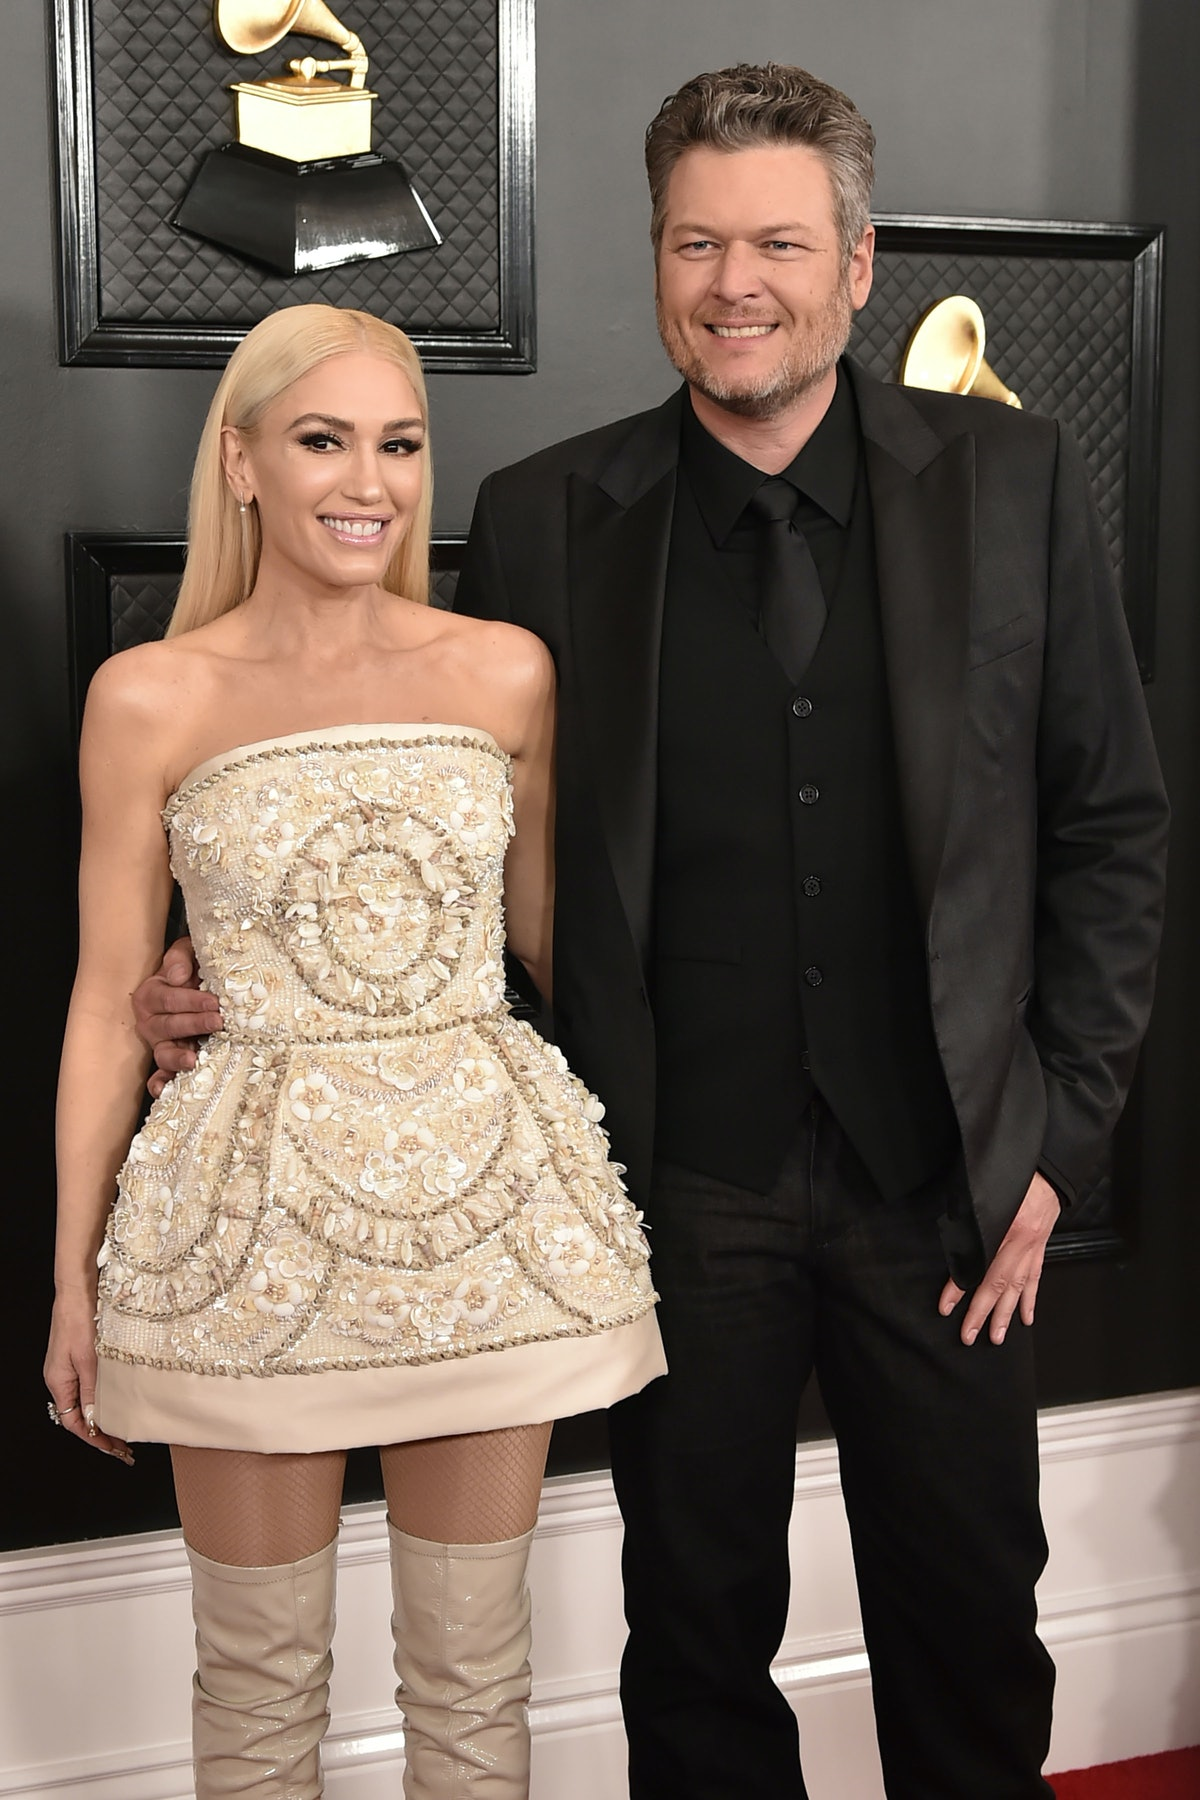 LOS ANGELES, CA - JANUARY 26: Gwen Stefani and Blake Shelton attend the 62nd Annual Grammy Awards at...